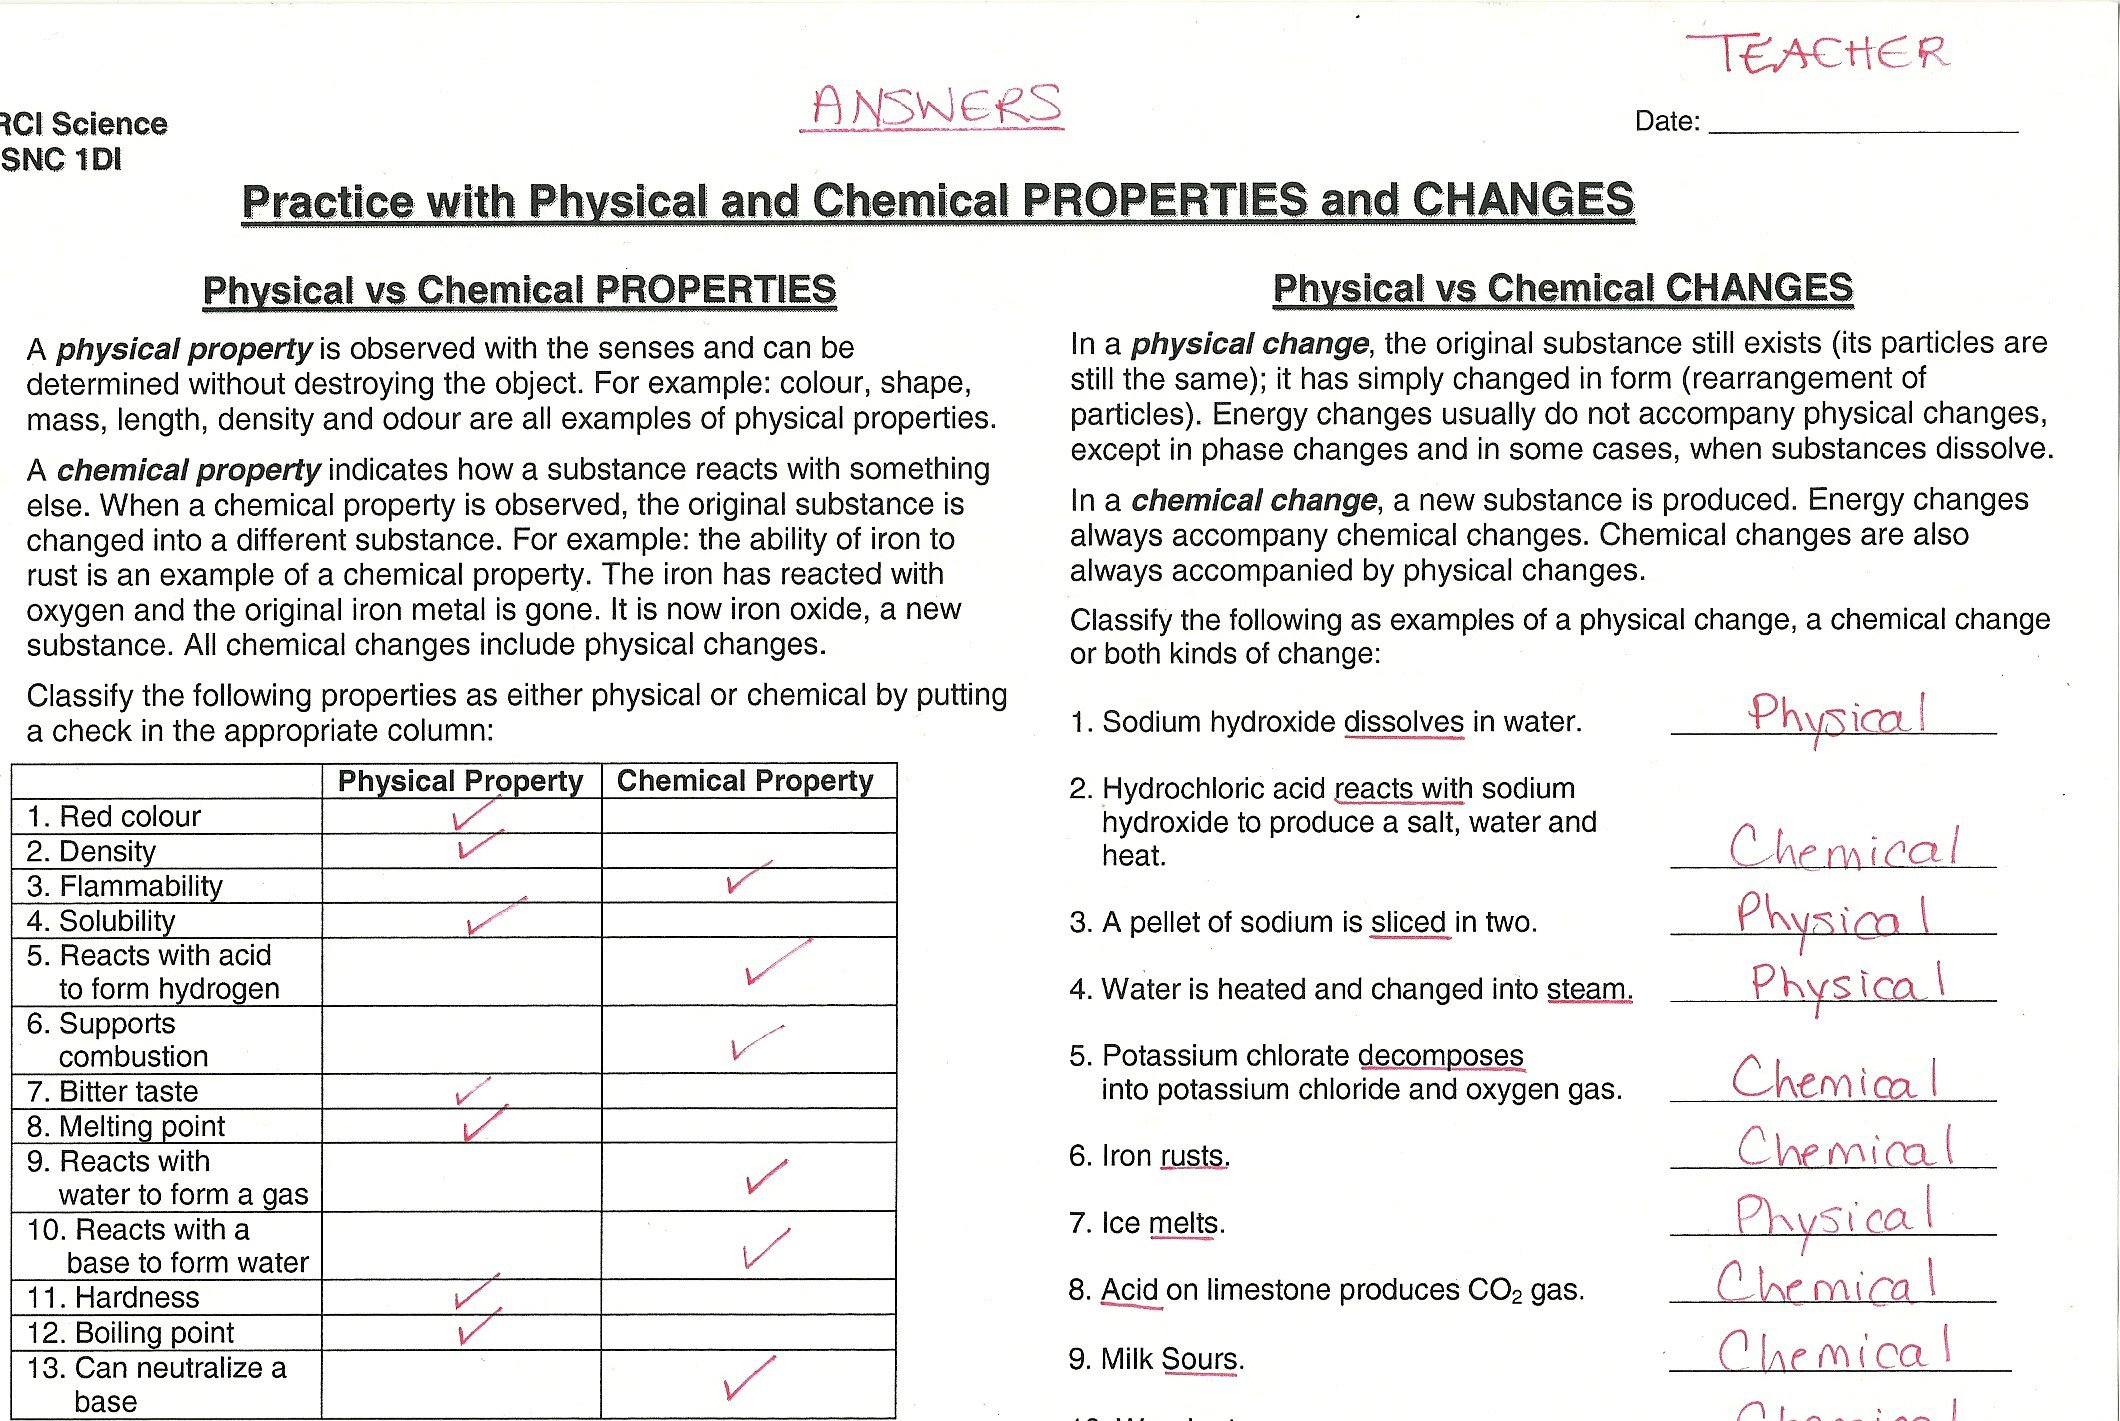 Chemical Vs Physical Change Worksheets